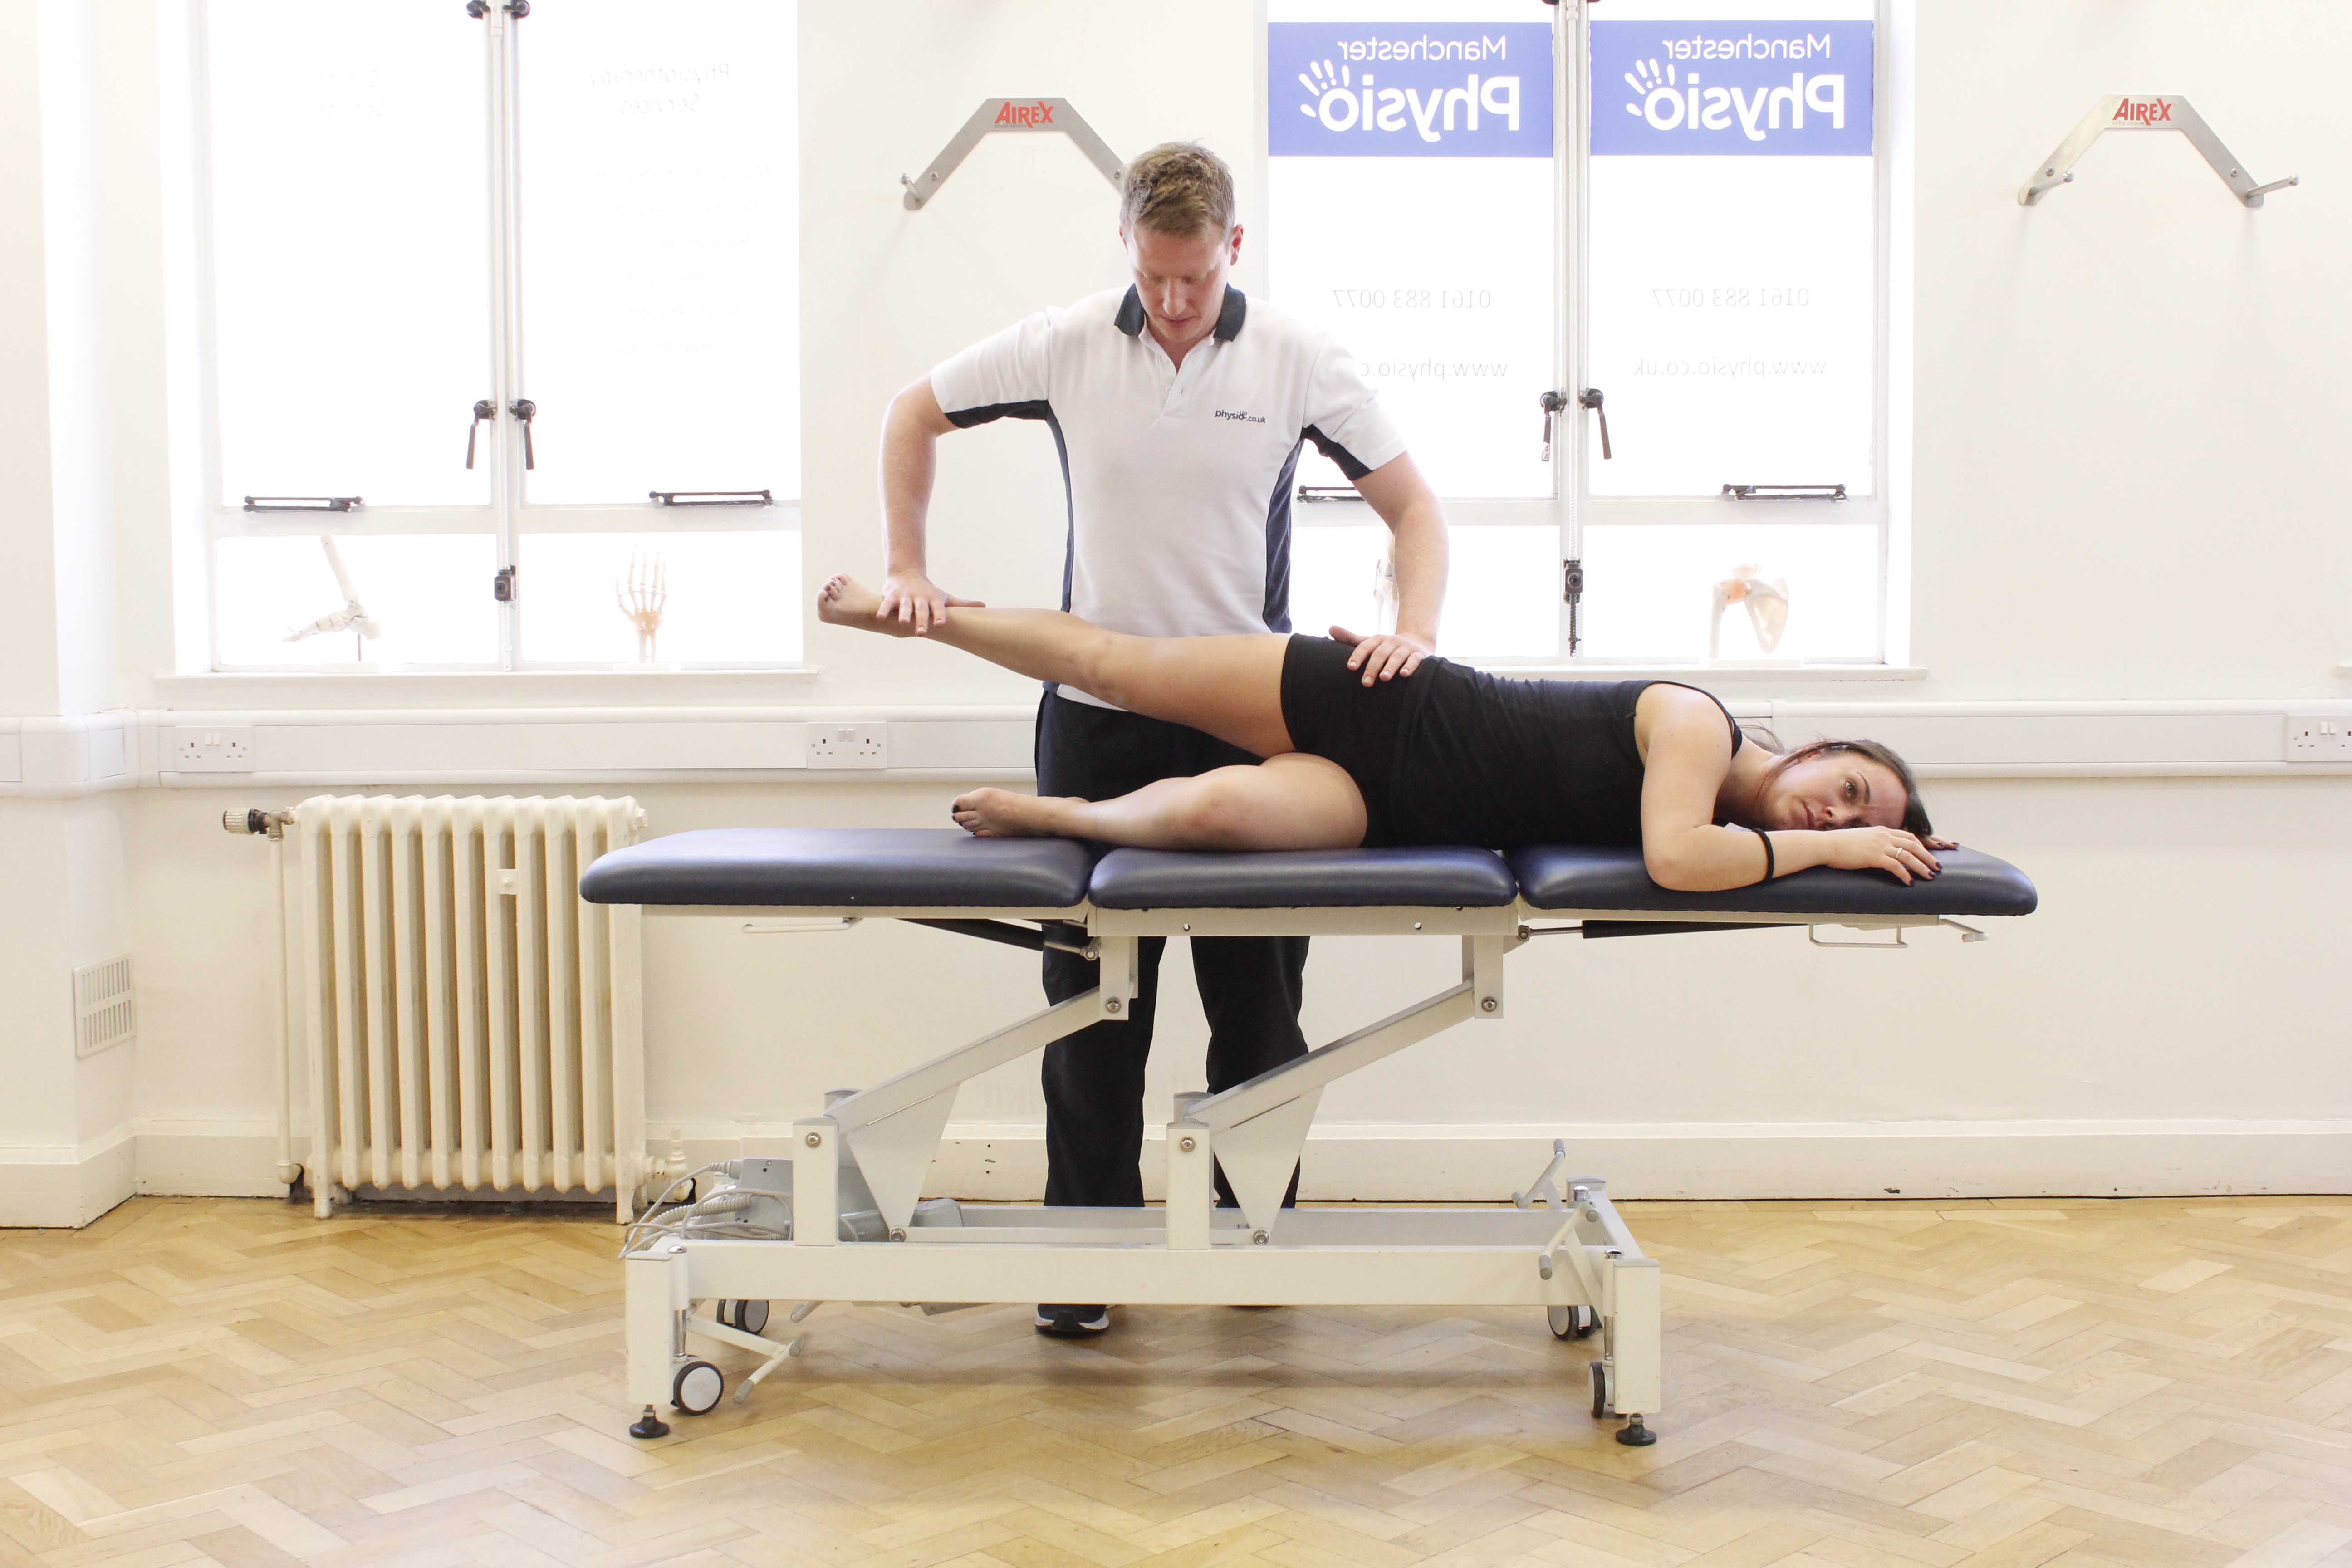 Toning and strenghtening exercises assisted by specialist MSK Physiotherapist